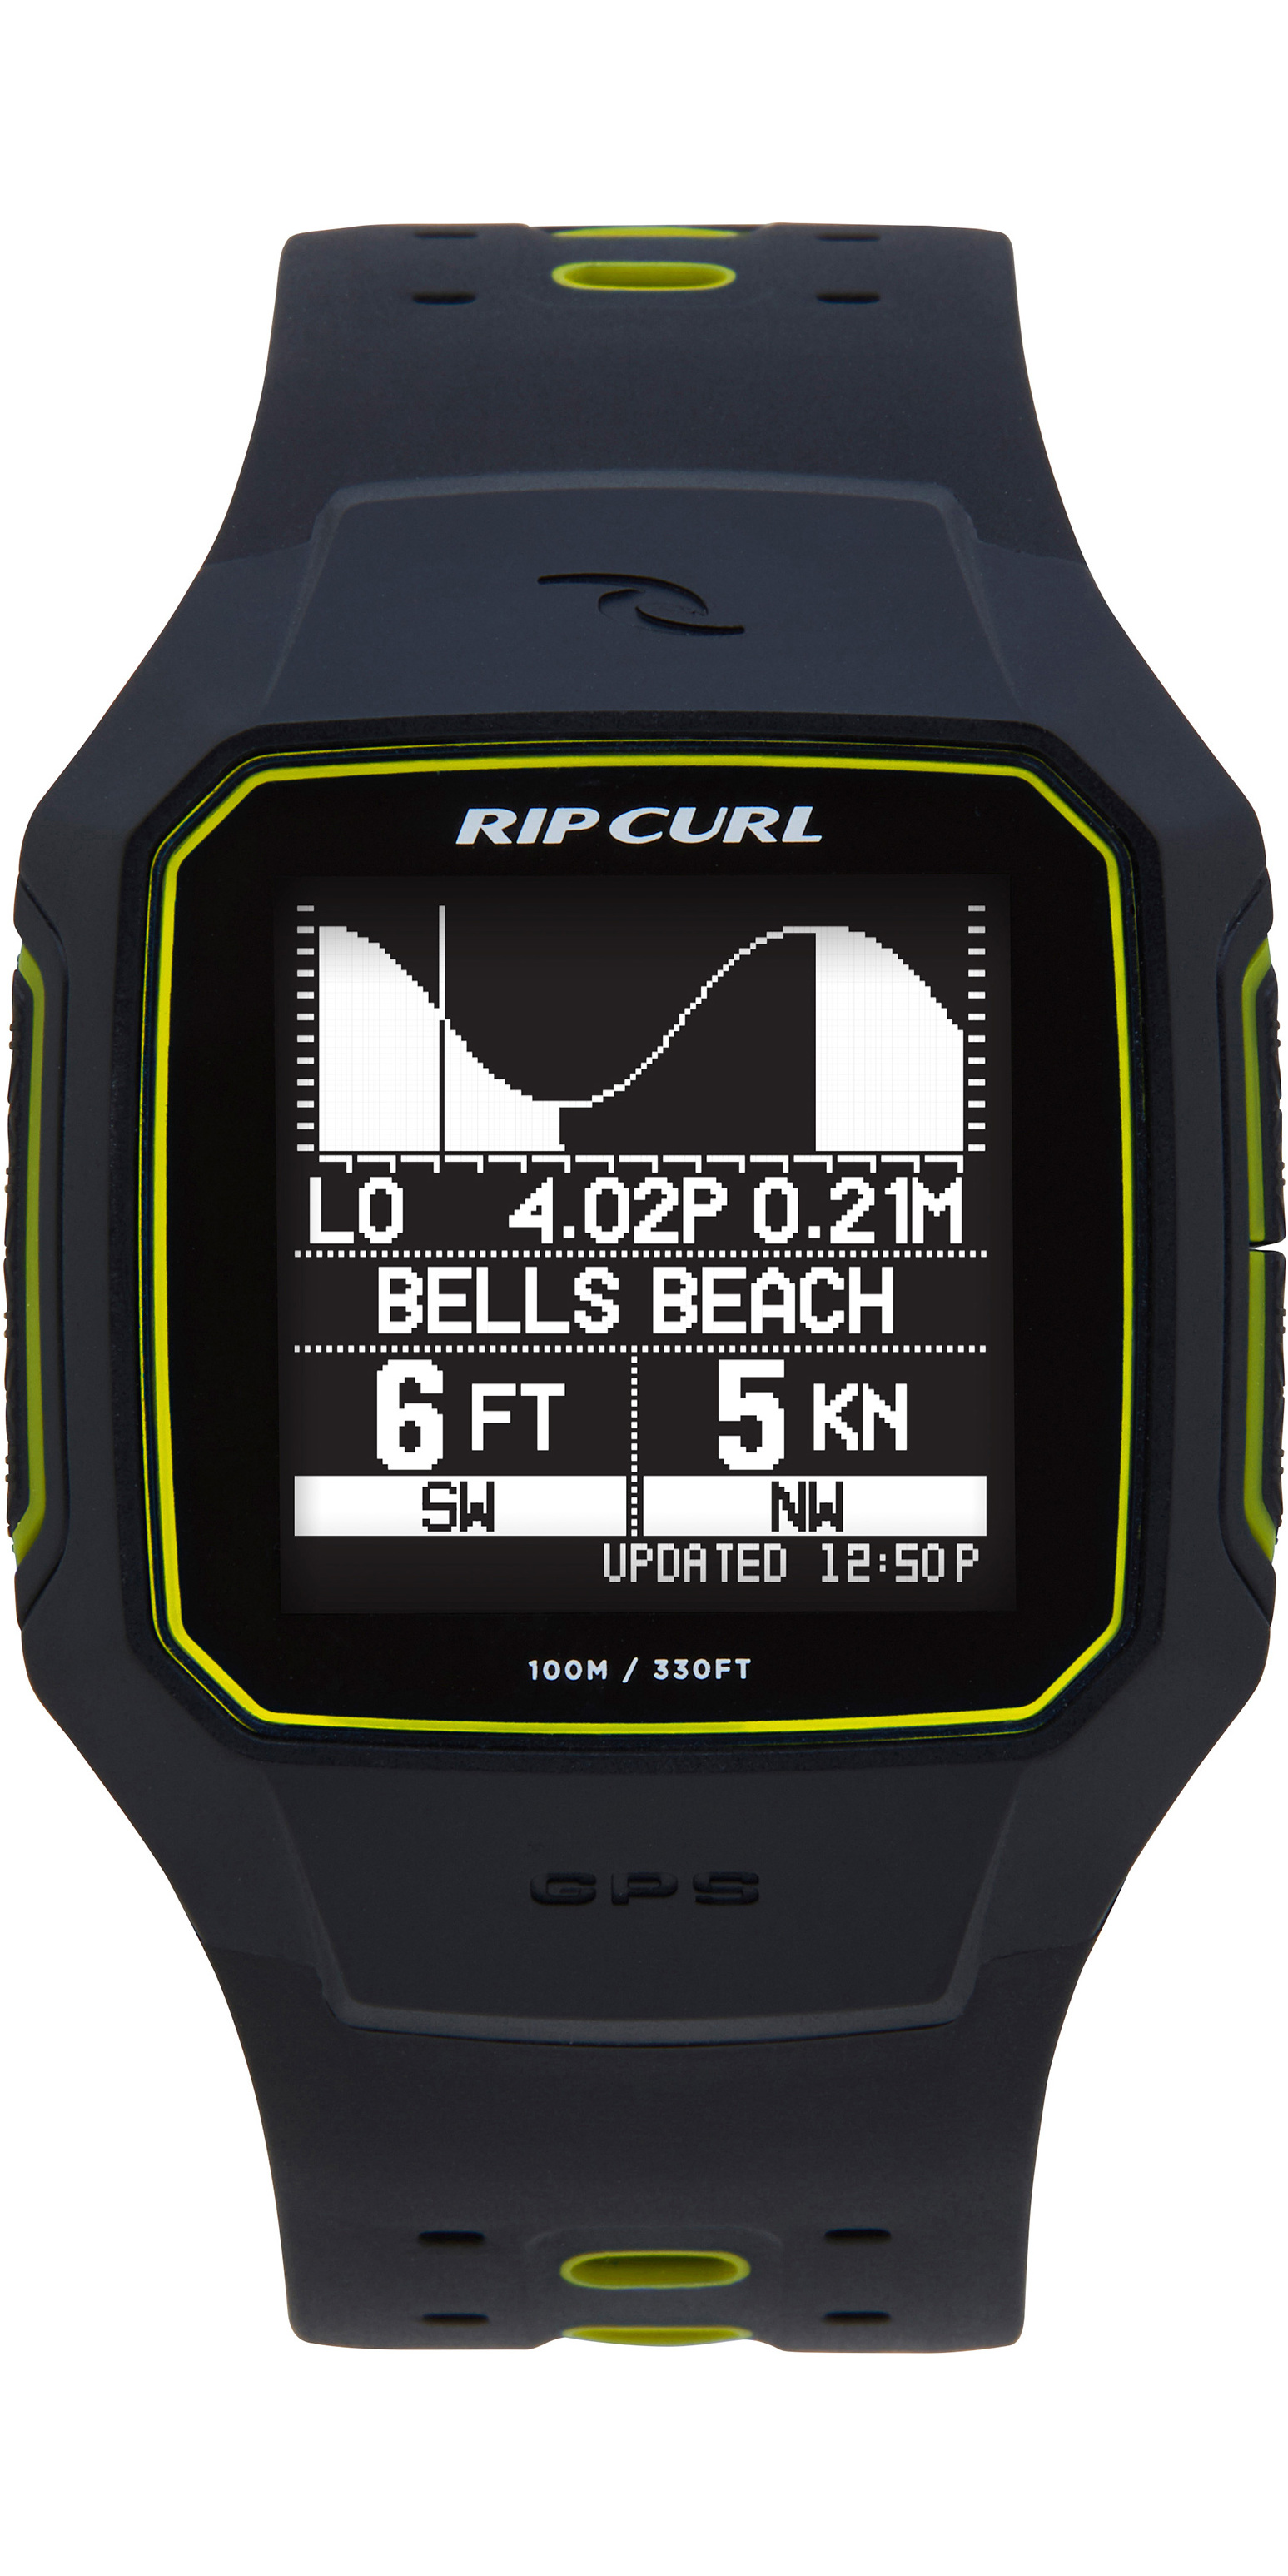 ed9324cbc2f 2019 Rip Curl Cerca GPS Smartwatch serie 2 Smart Yellow A1144 - Mens ...